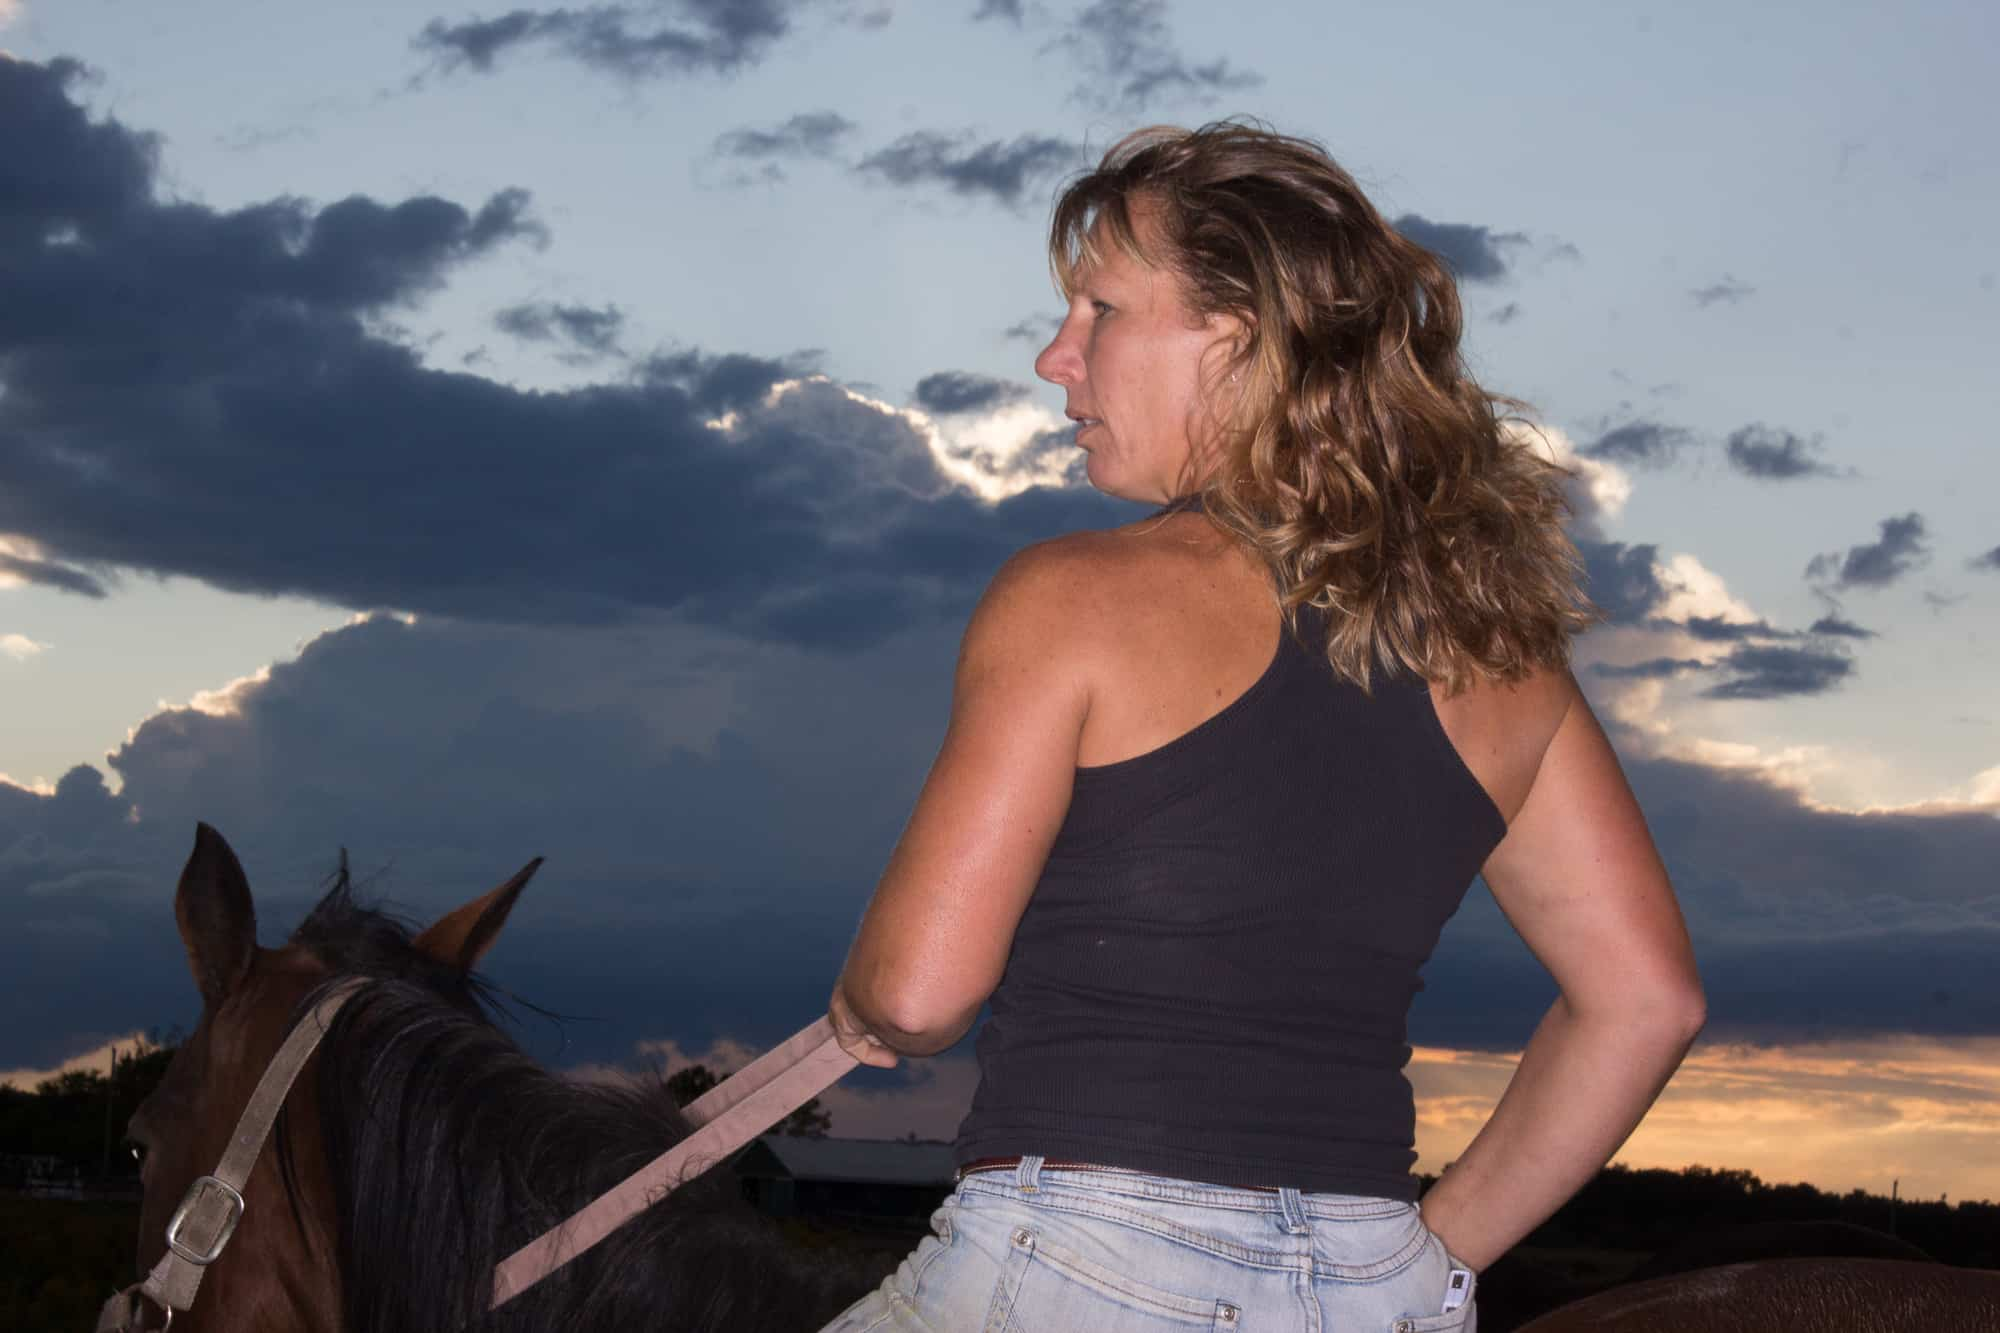 A woman ranch owner trains horses.